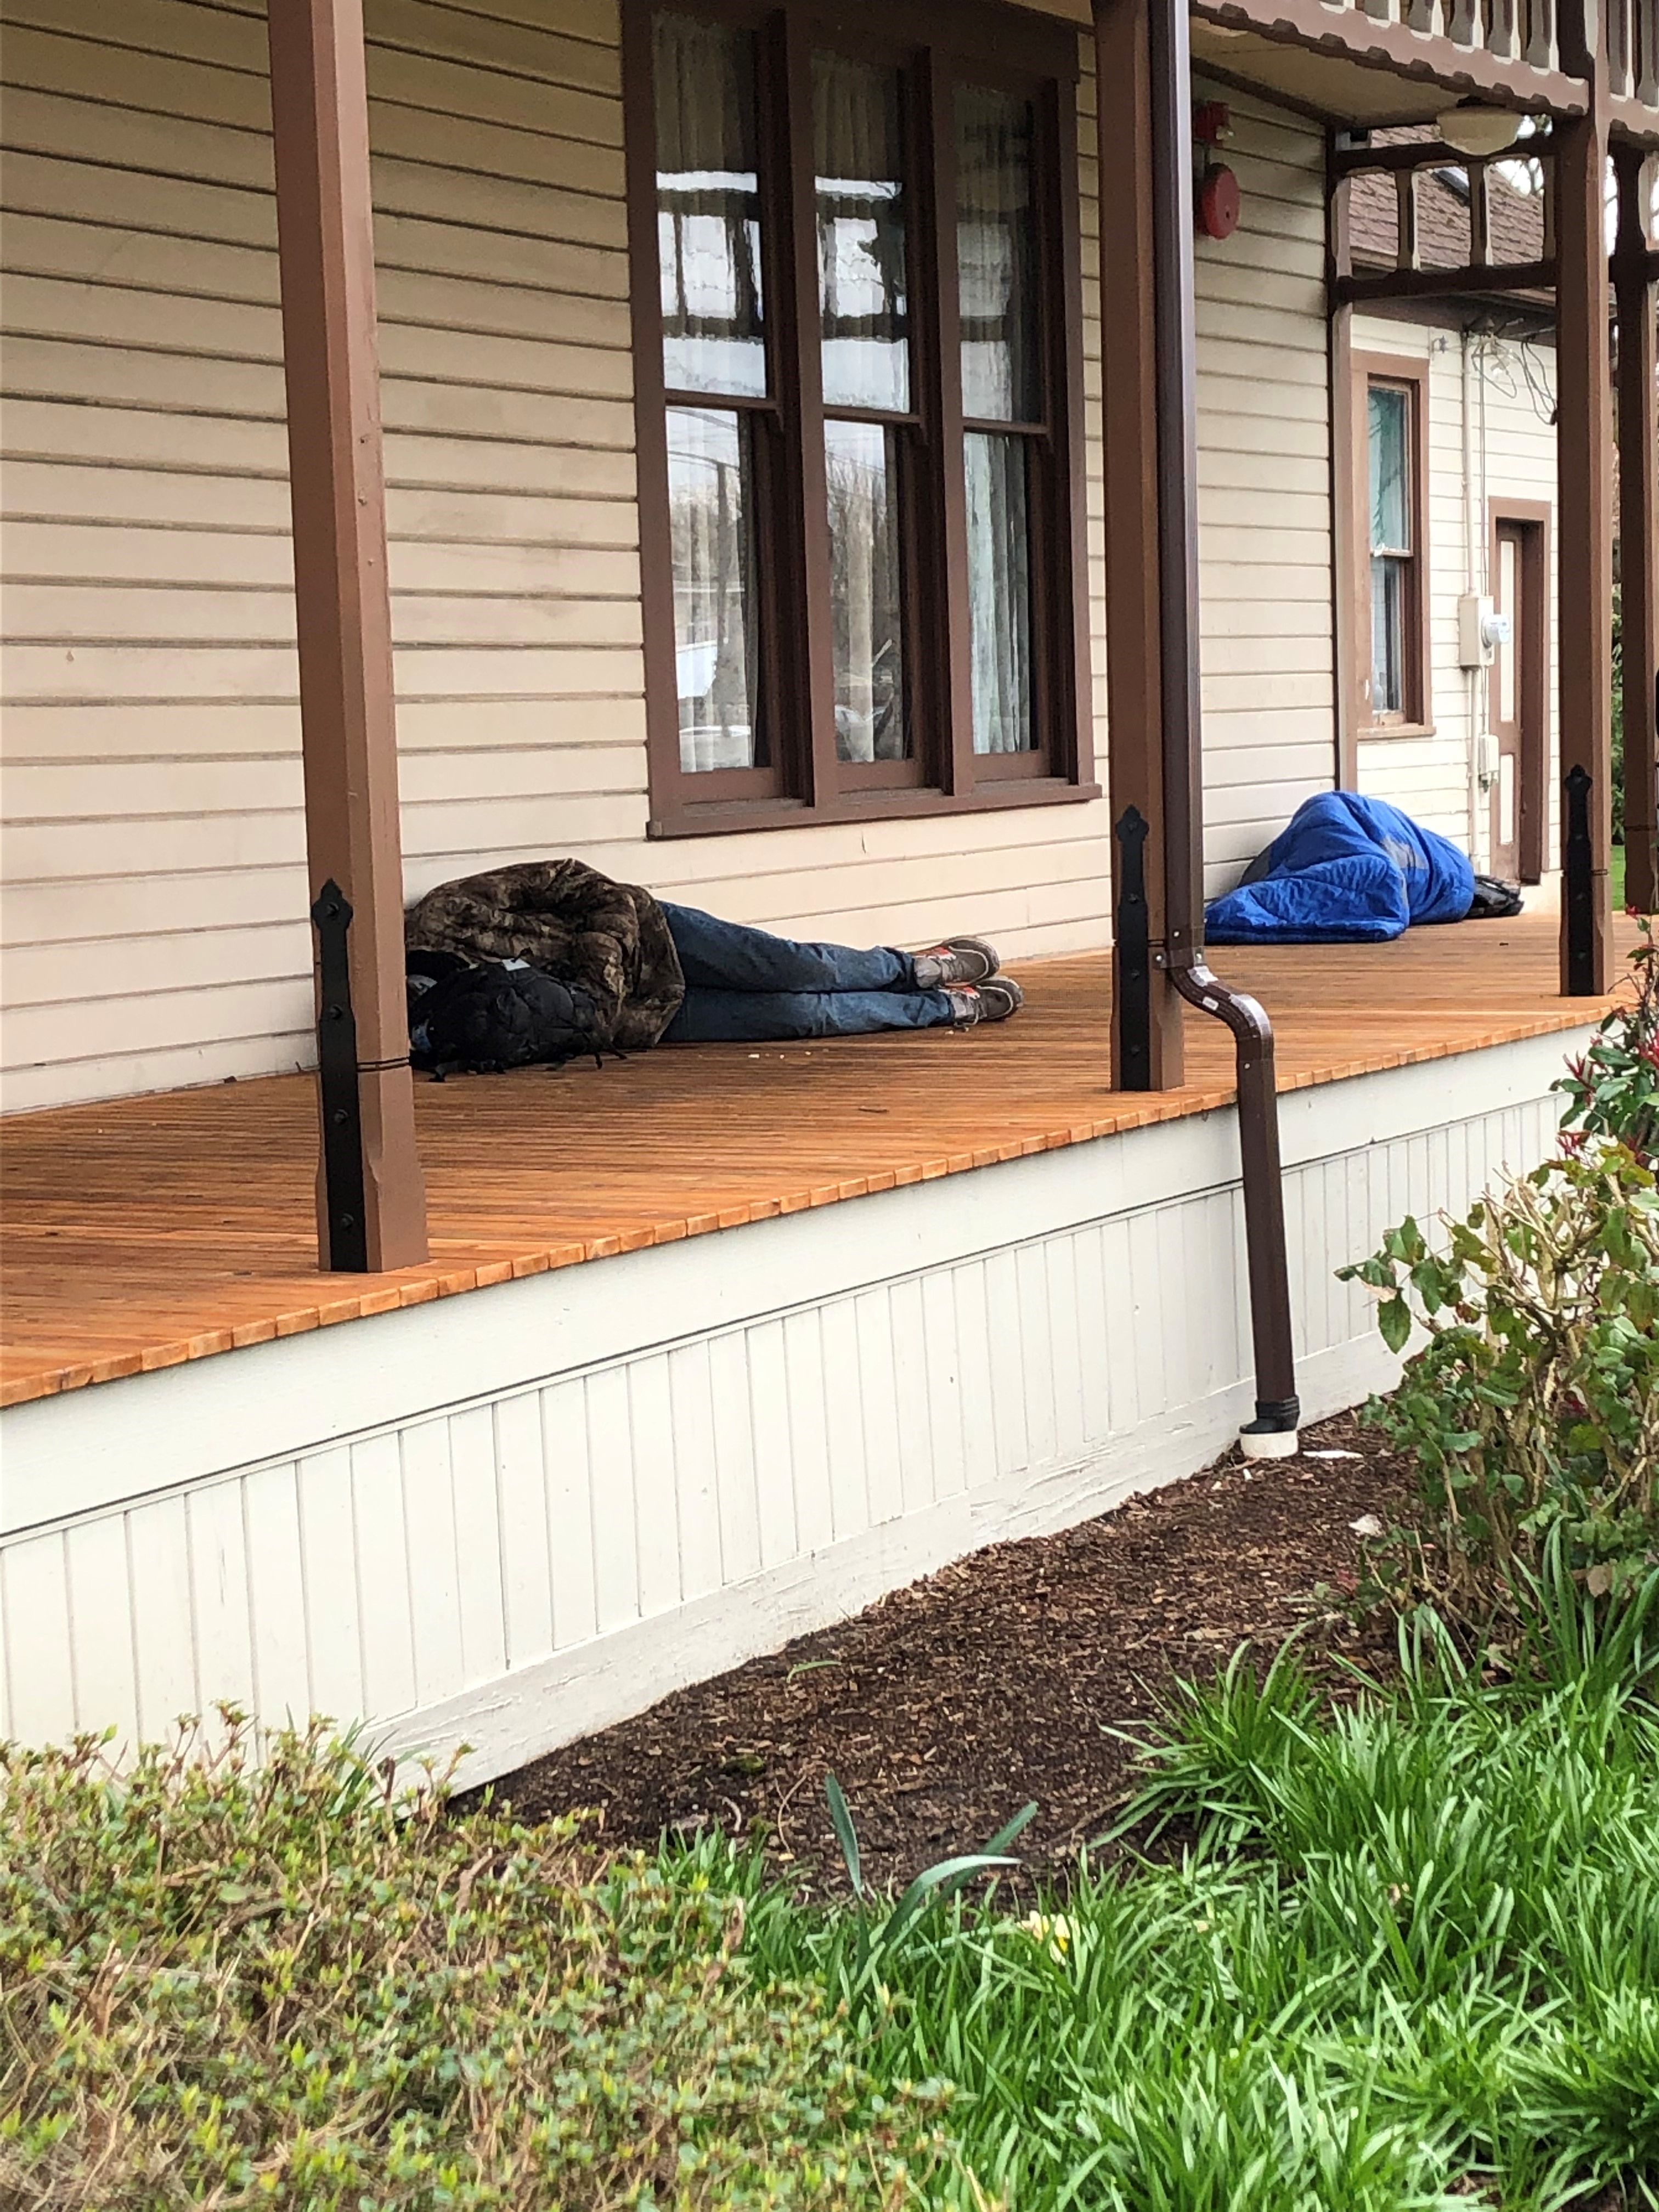 Two people sleeping on the Ryan House porch.